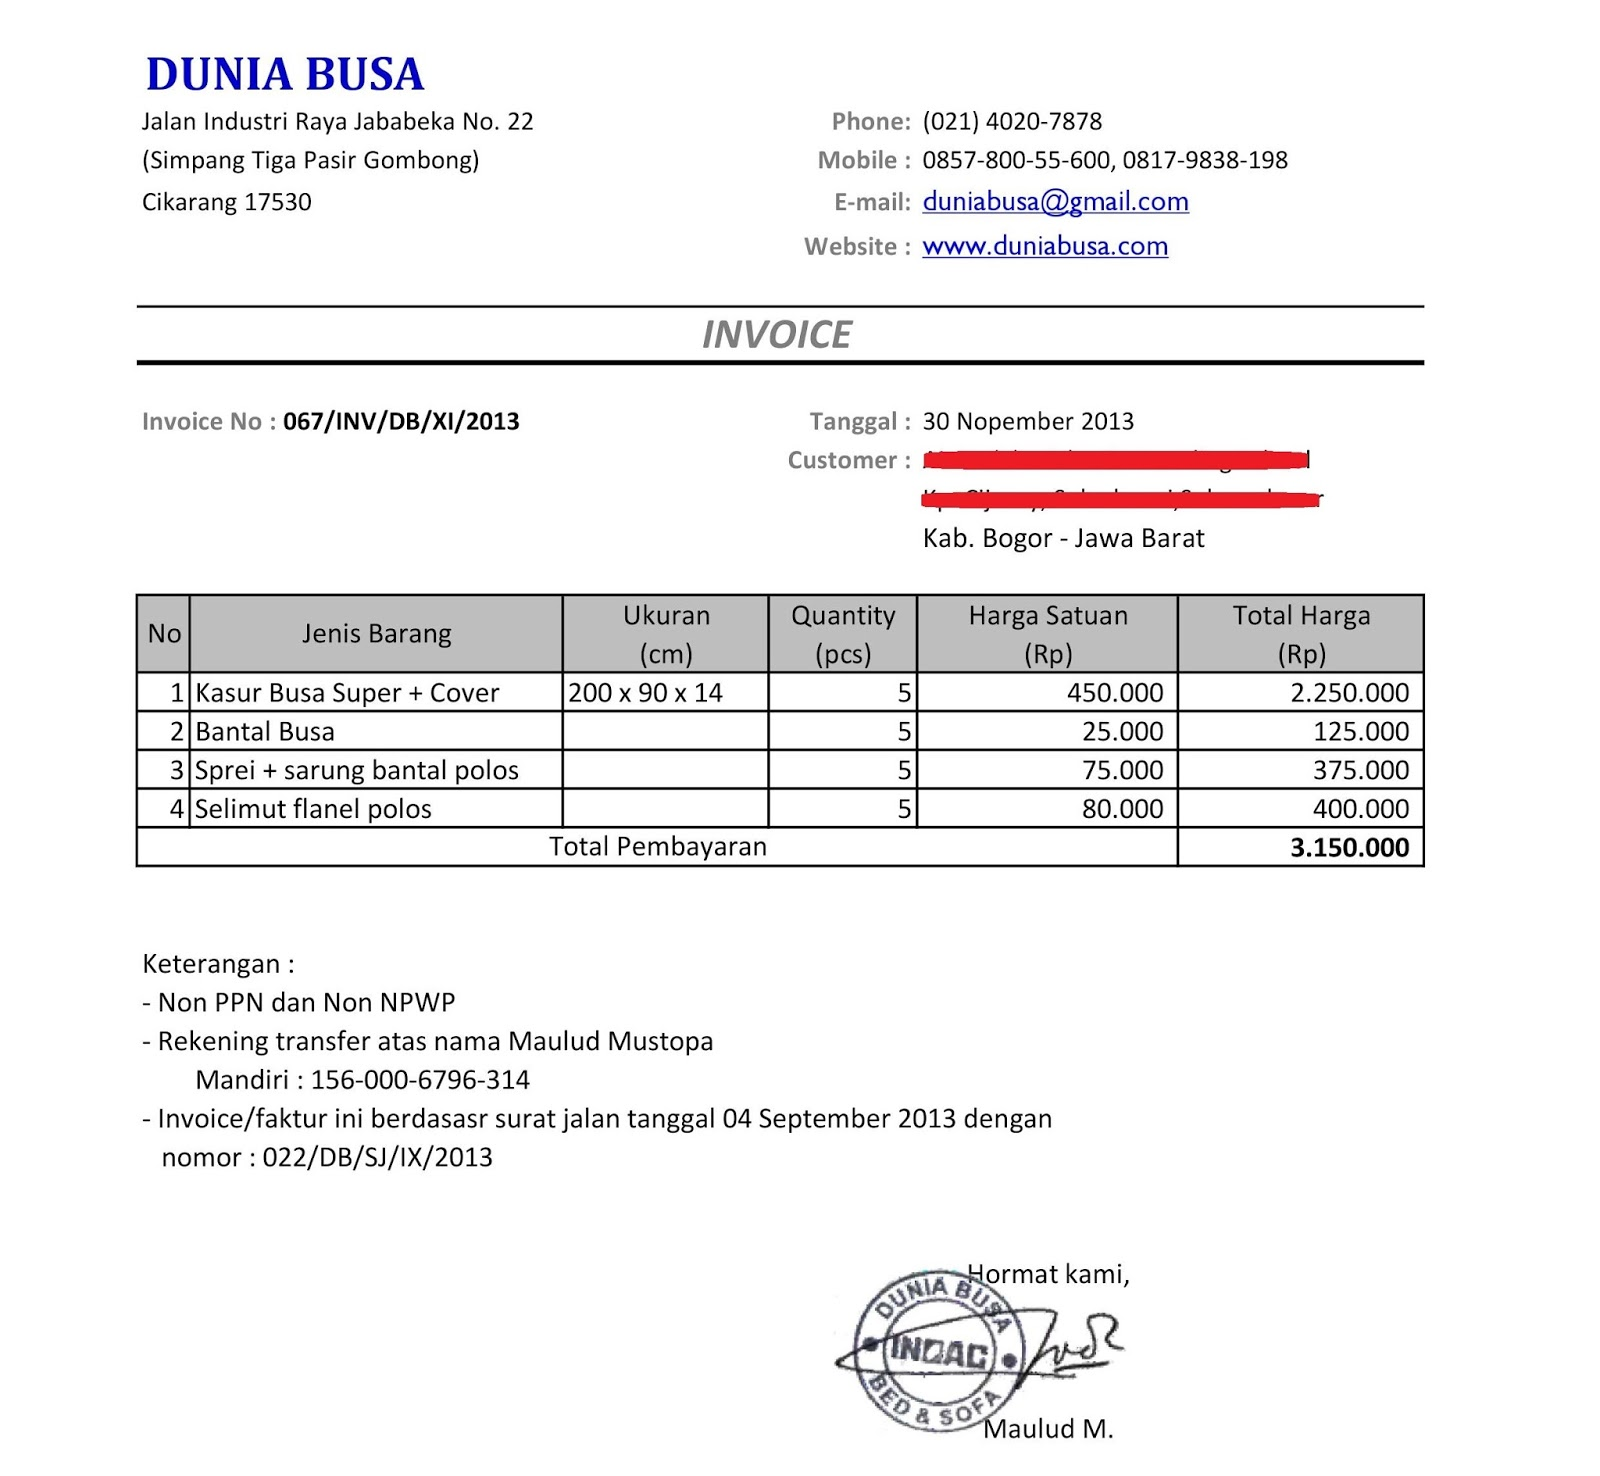 Centralasianshepherdus  Pleasant Free Invoice Online  Create Invoice Online  Invoice Template  With Glamorous Contoh Format Invoice Atau Surat Tagihan  Brankas Arsip  Free Invoice Online With Adorable Free Auto Repair Invoice Form Also Parforma Invoice In Addition Performer Invoice And Journal Entry For Invoice Processing As Well As Ariba E Invoicing Additionally Open Invoice Adp Login From Sklepco With Centralasianshepherdus  Glamorous Free Invoice Online  Create Invoice Online  Invoice Template  With Adorable Contoh Format Invoice Atau Surat Tagihan  Brankas Arsip  Free Invoice Online And Pleasant Free Auto Repair Invoice Form Also Parforma Invoice In Addition Performer Invoice From Sklepco